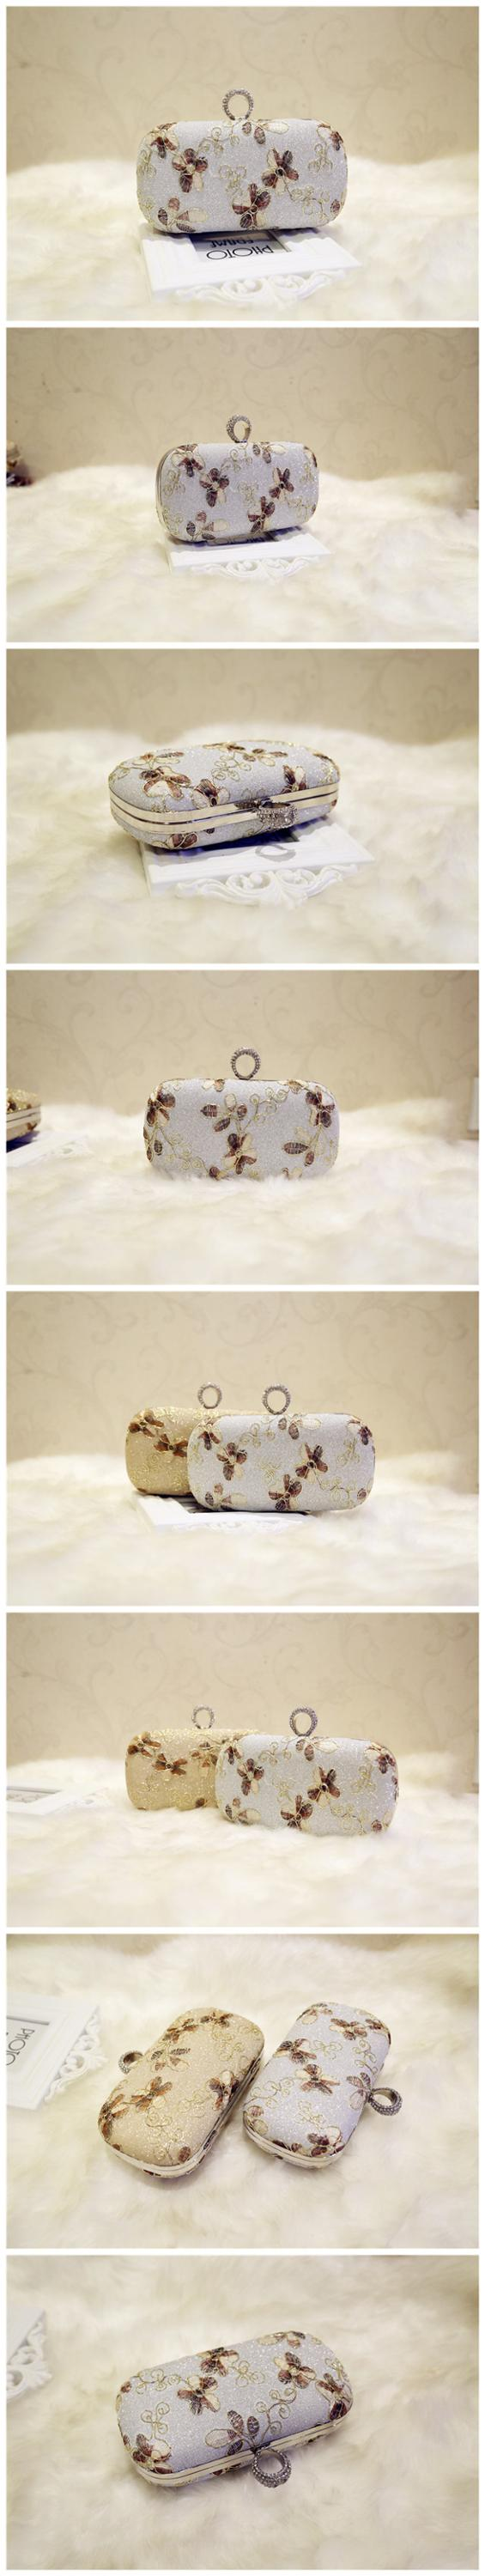 New ring hook strapless clutch embroidered small square dinner party mobile phone bag